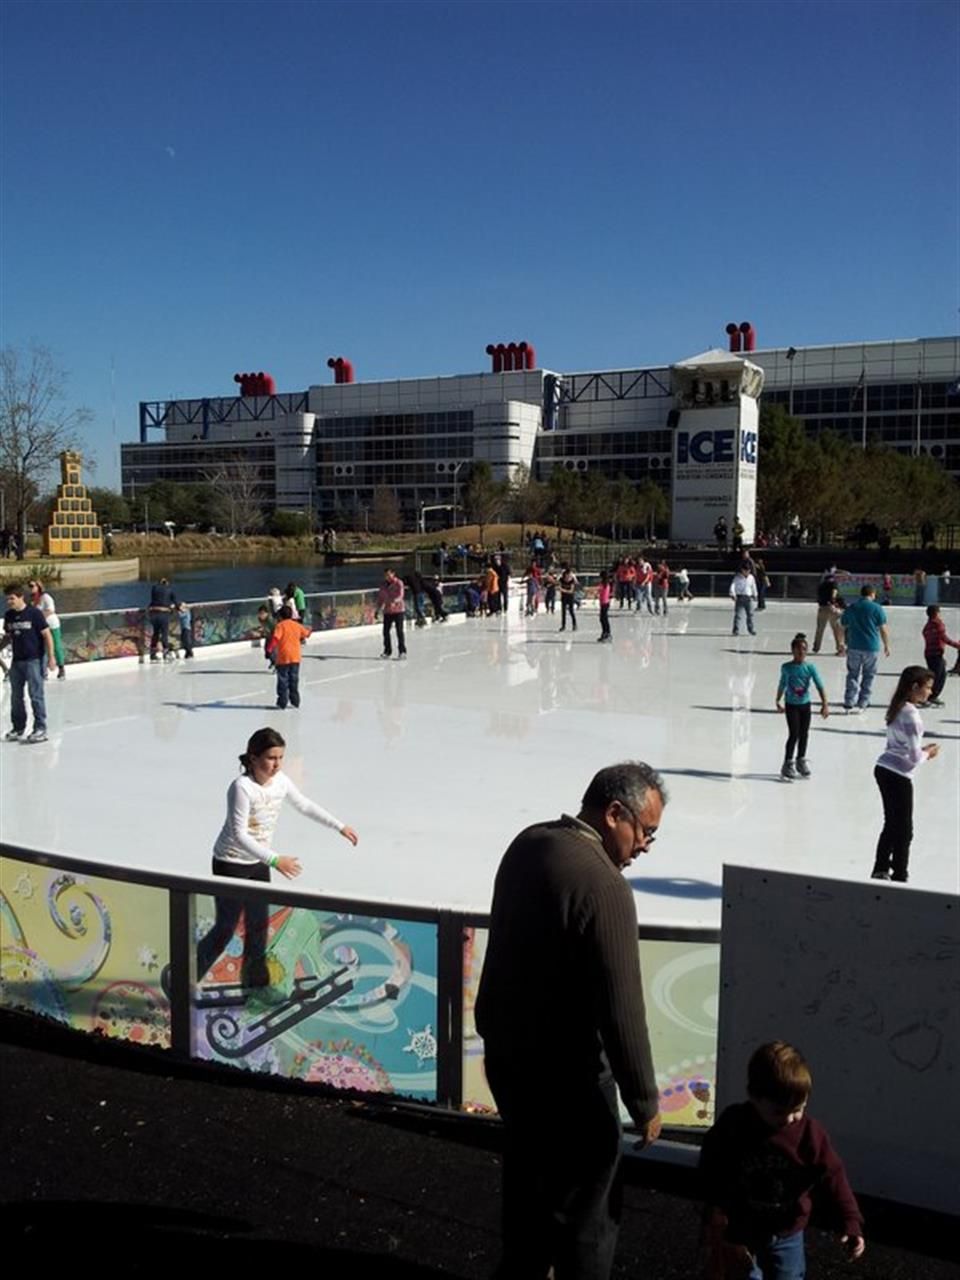 Ice skating Discovery Green in downtown Houston